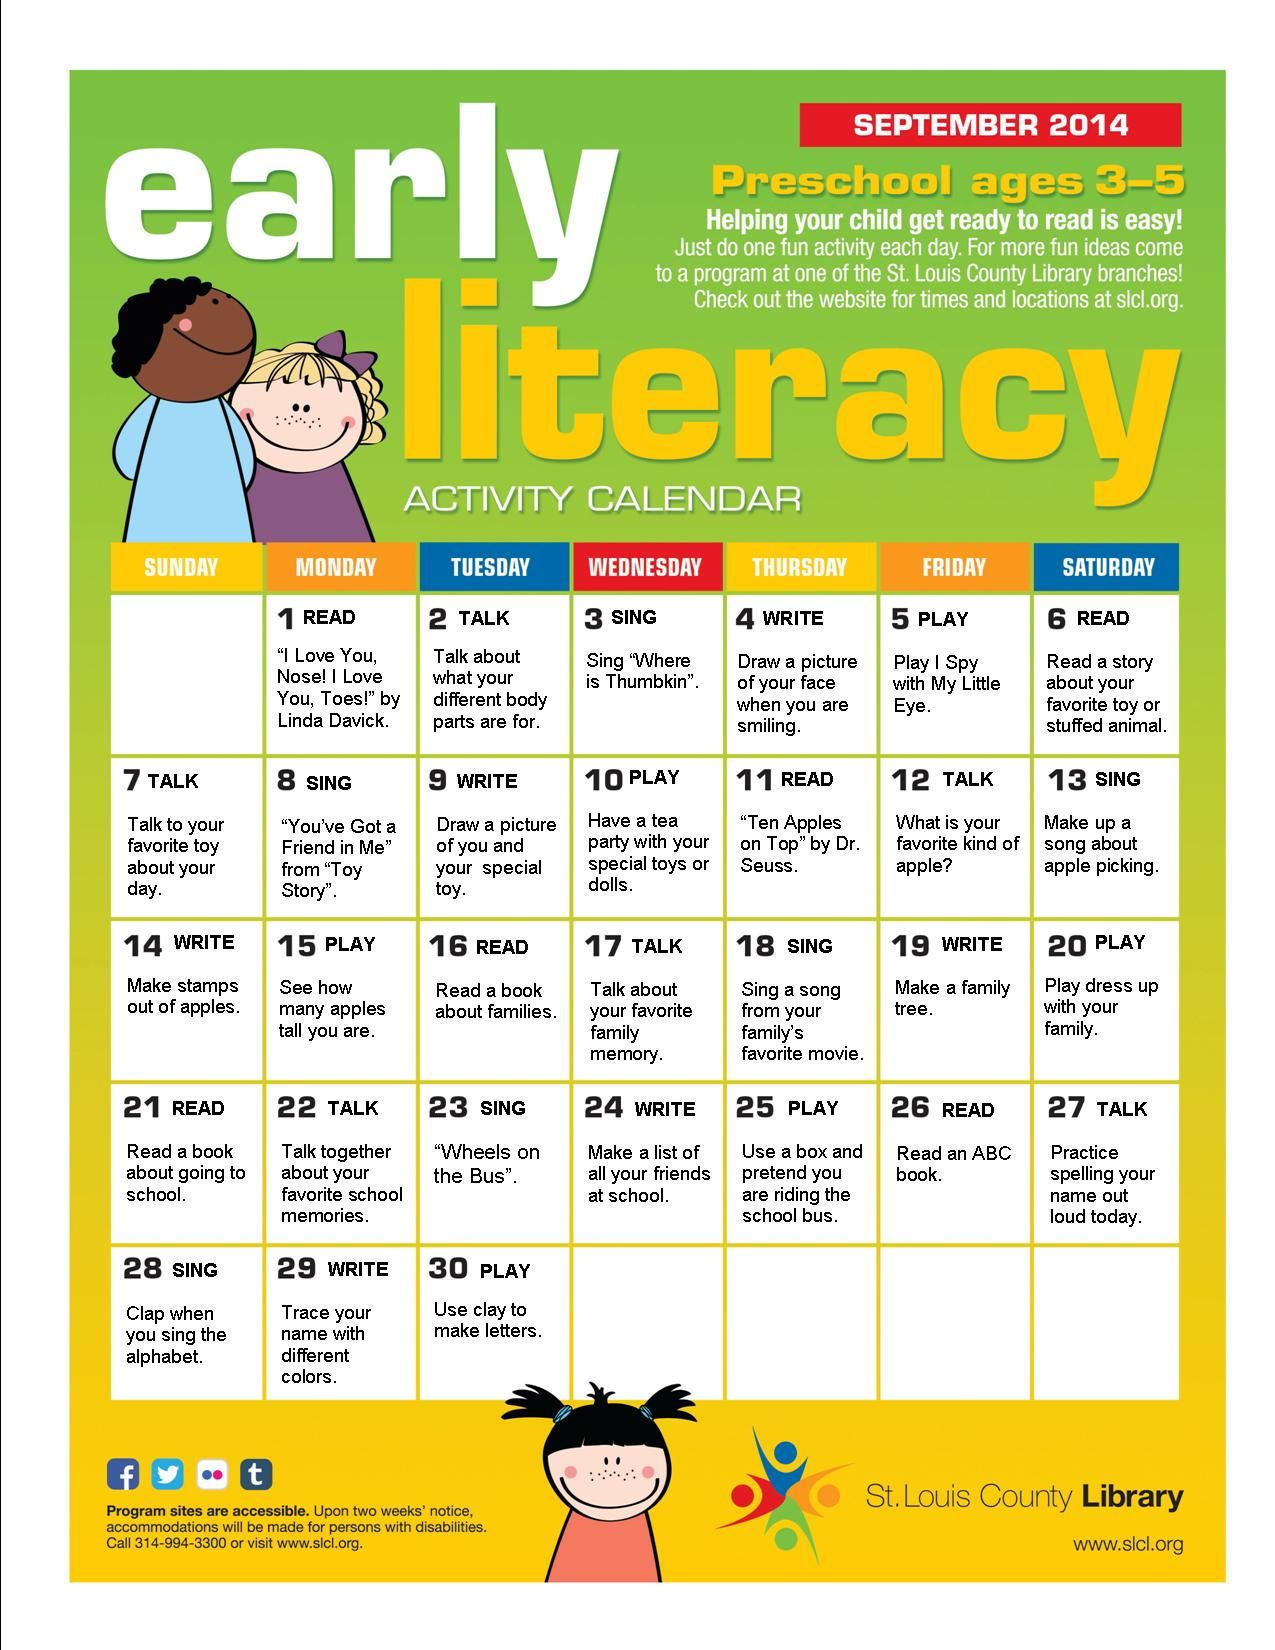 Kindergarten Readiness Calendar : Early literacy calendar for september